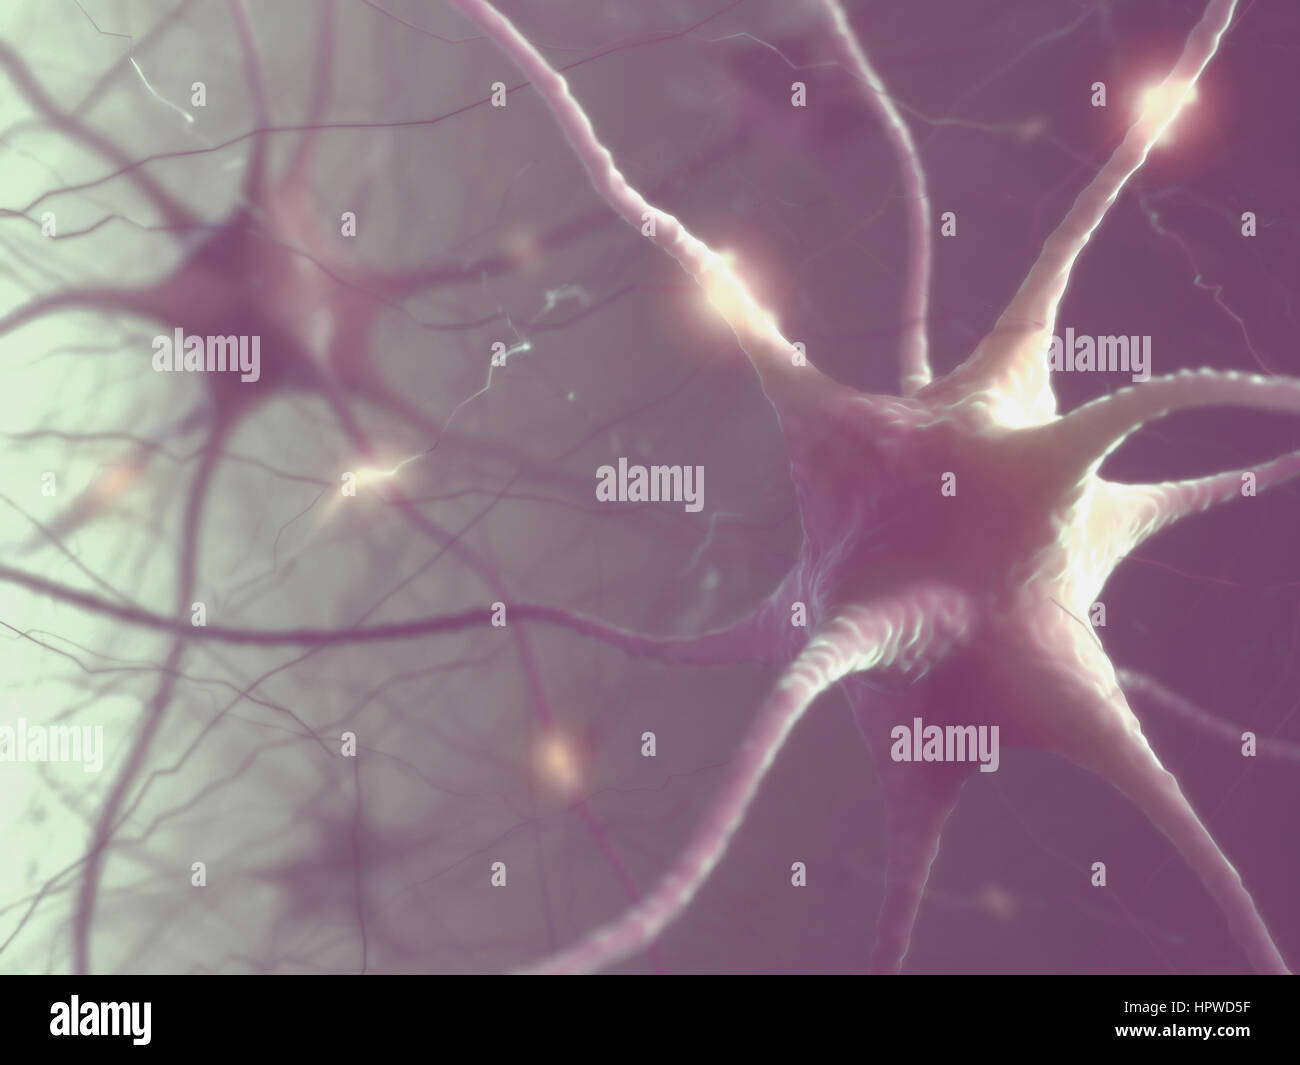 Nerve cells of the human brain, illustration. - Stock Image